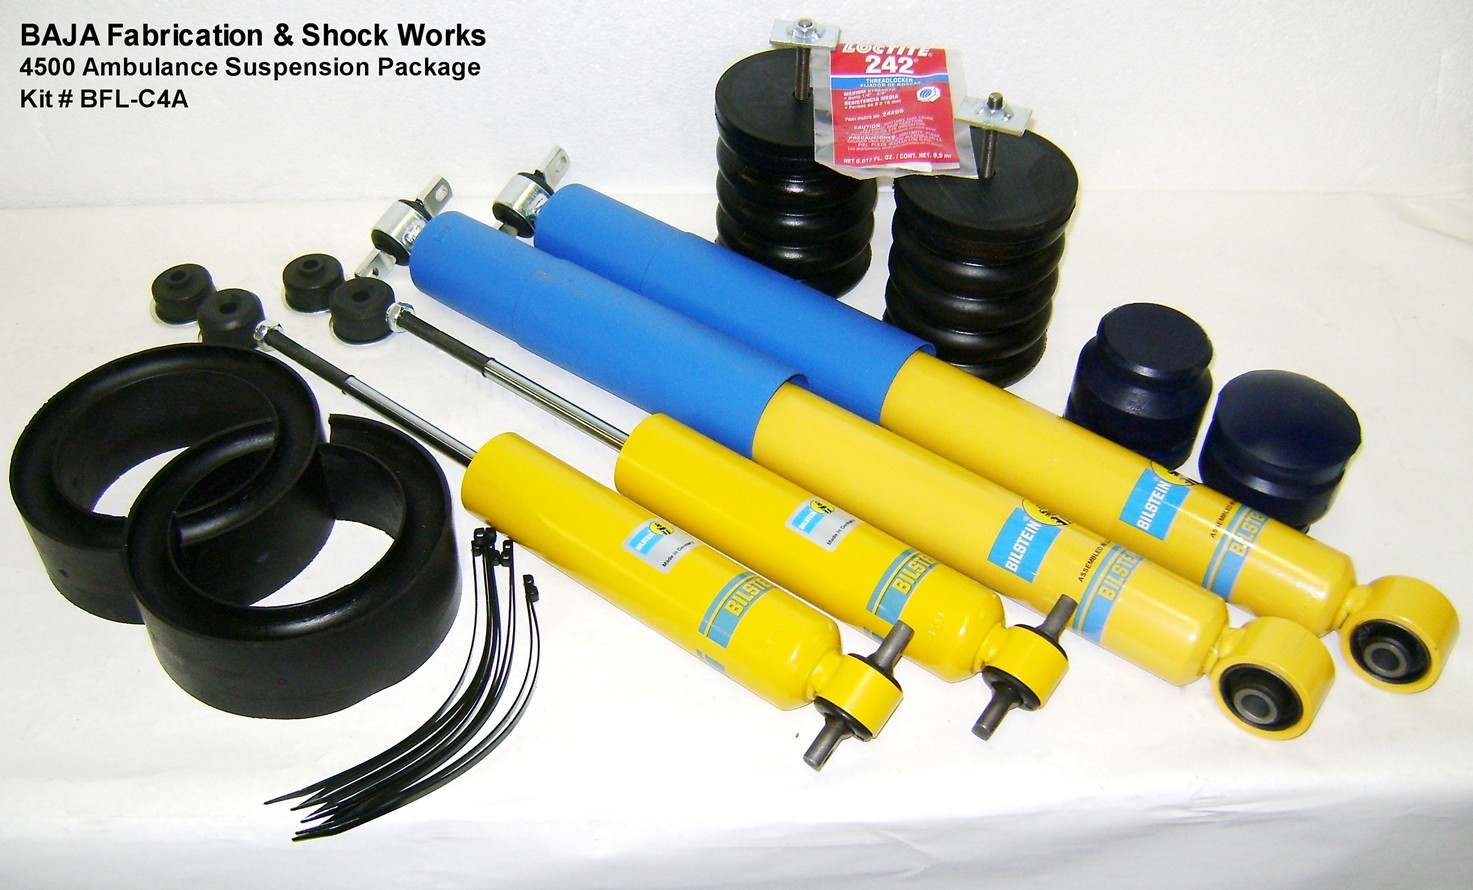 This combination of bump stops and shock absorbers has been created to improve the handling and ride for a fleet of ambulances.